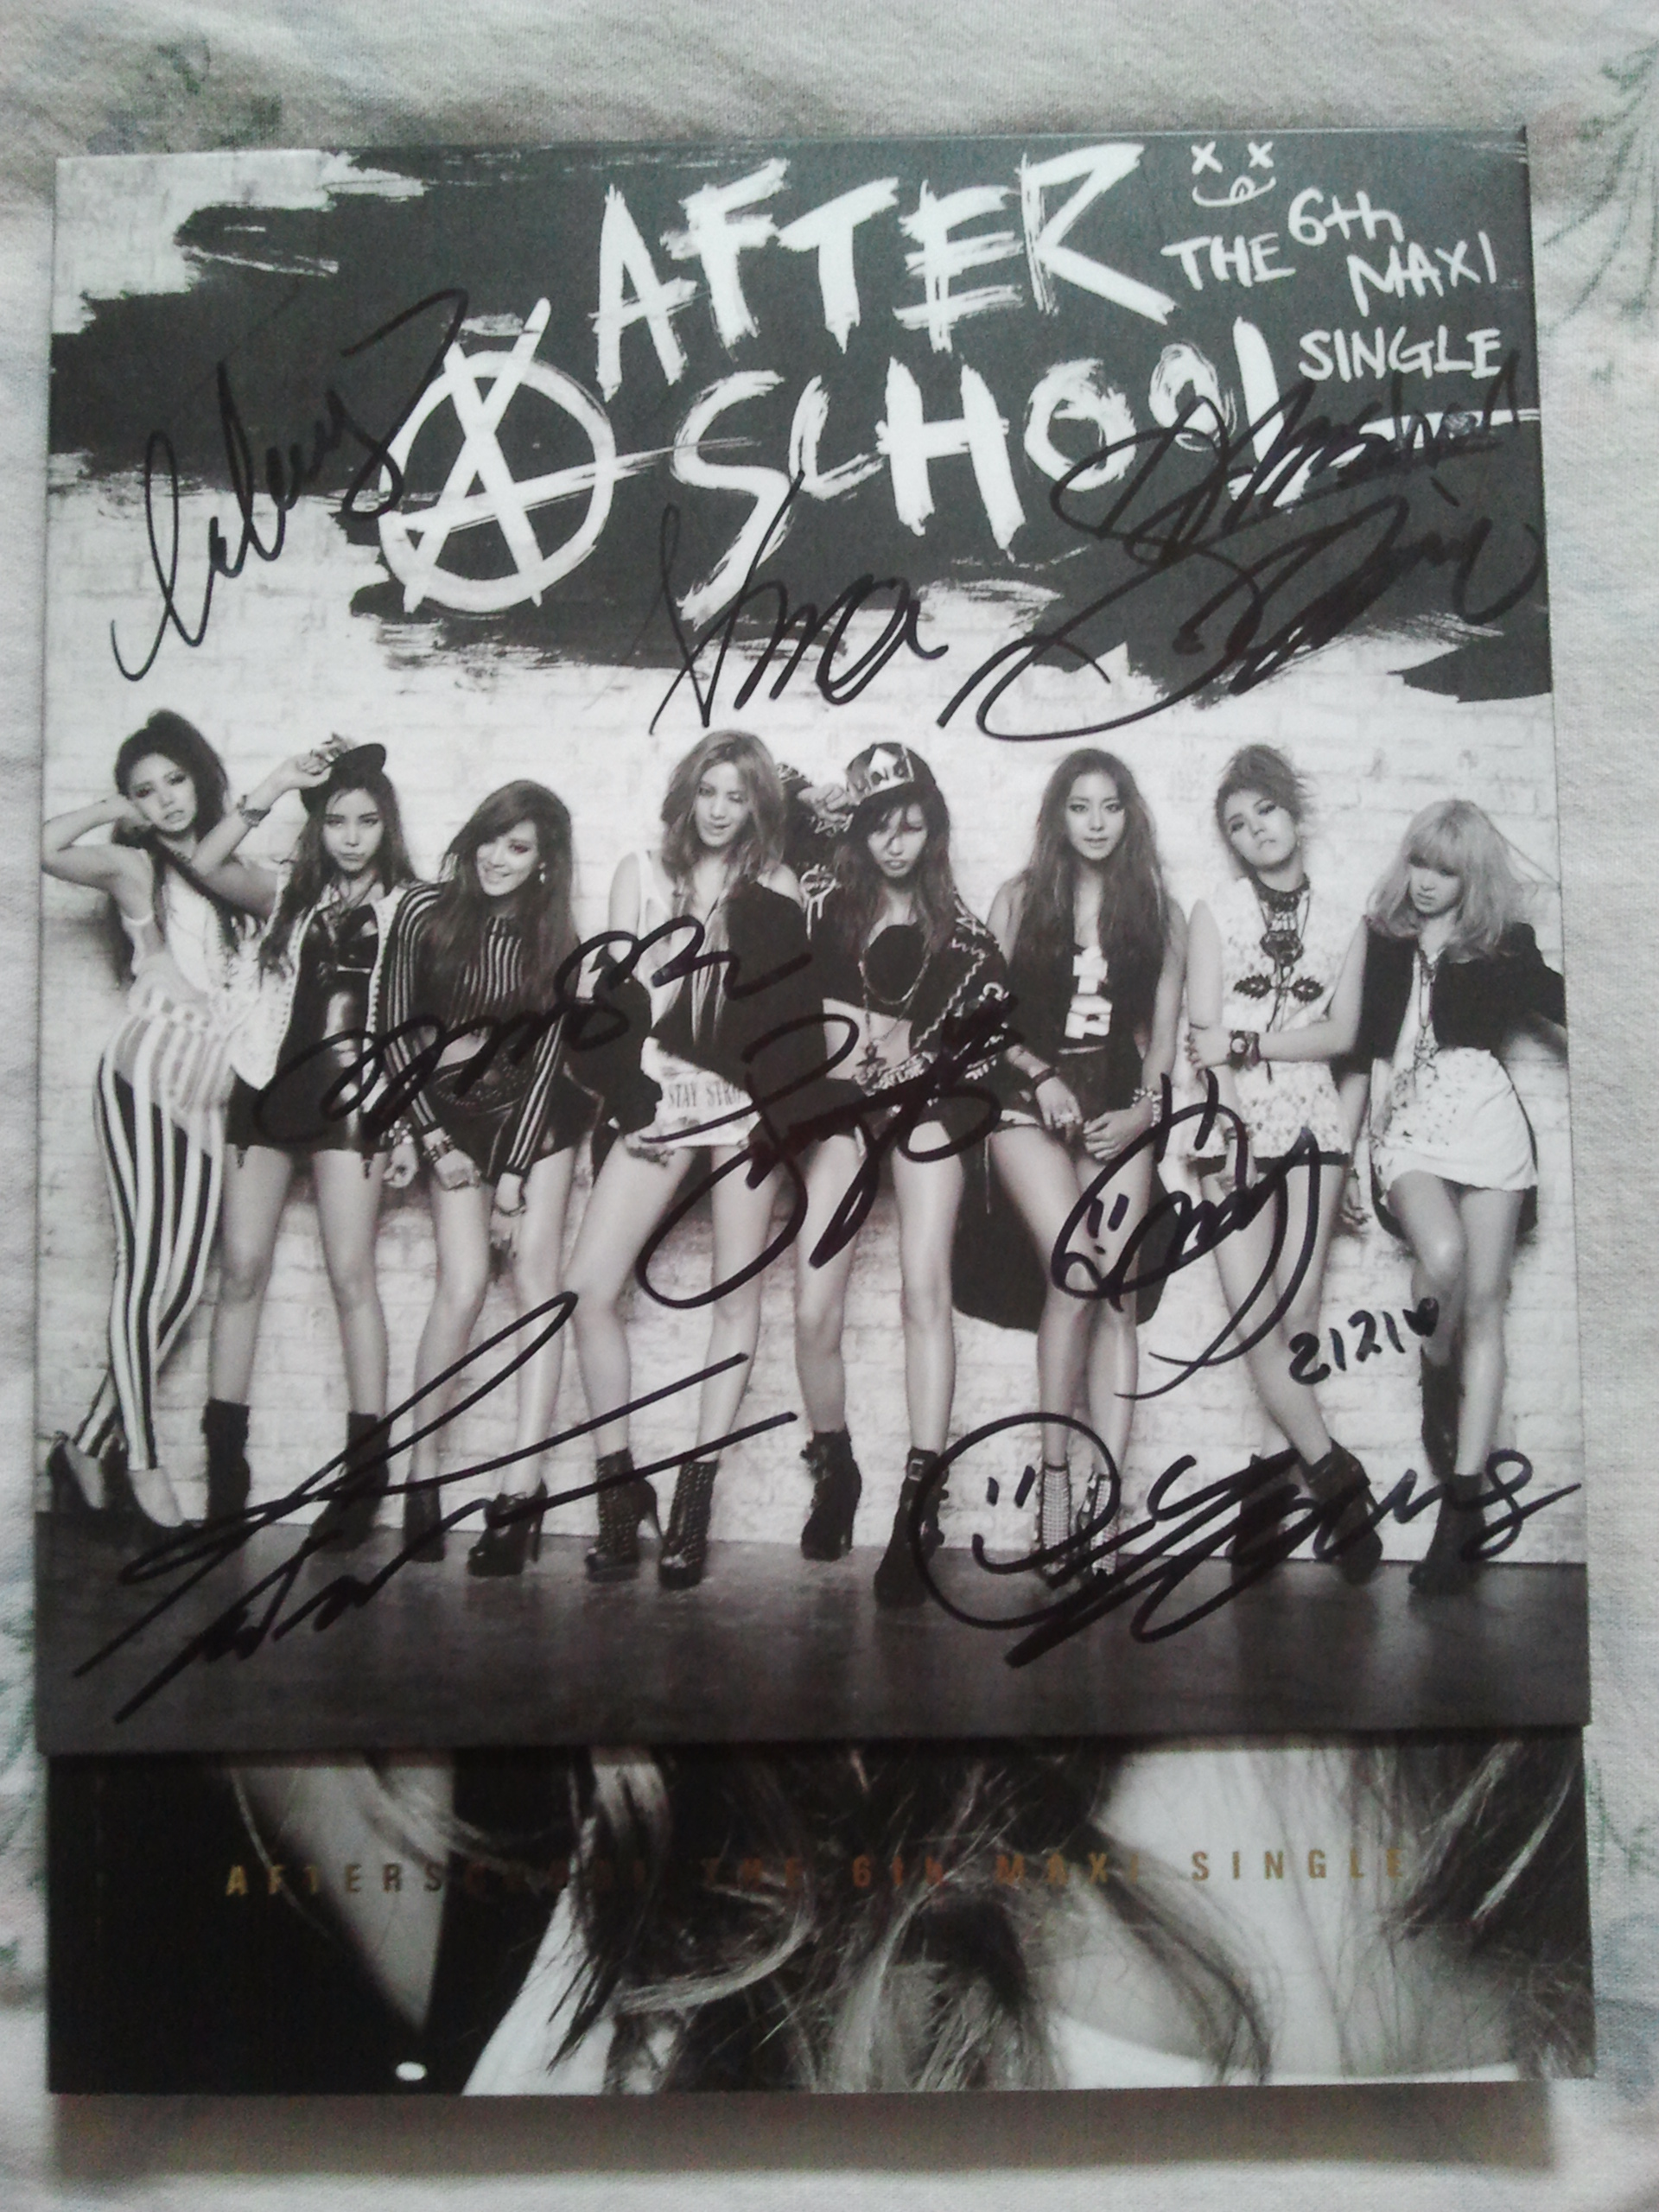 [DISCUSSION] Are the AS members changing their autographs? Calling detective PGZ and PBZ! 60226820140820134245